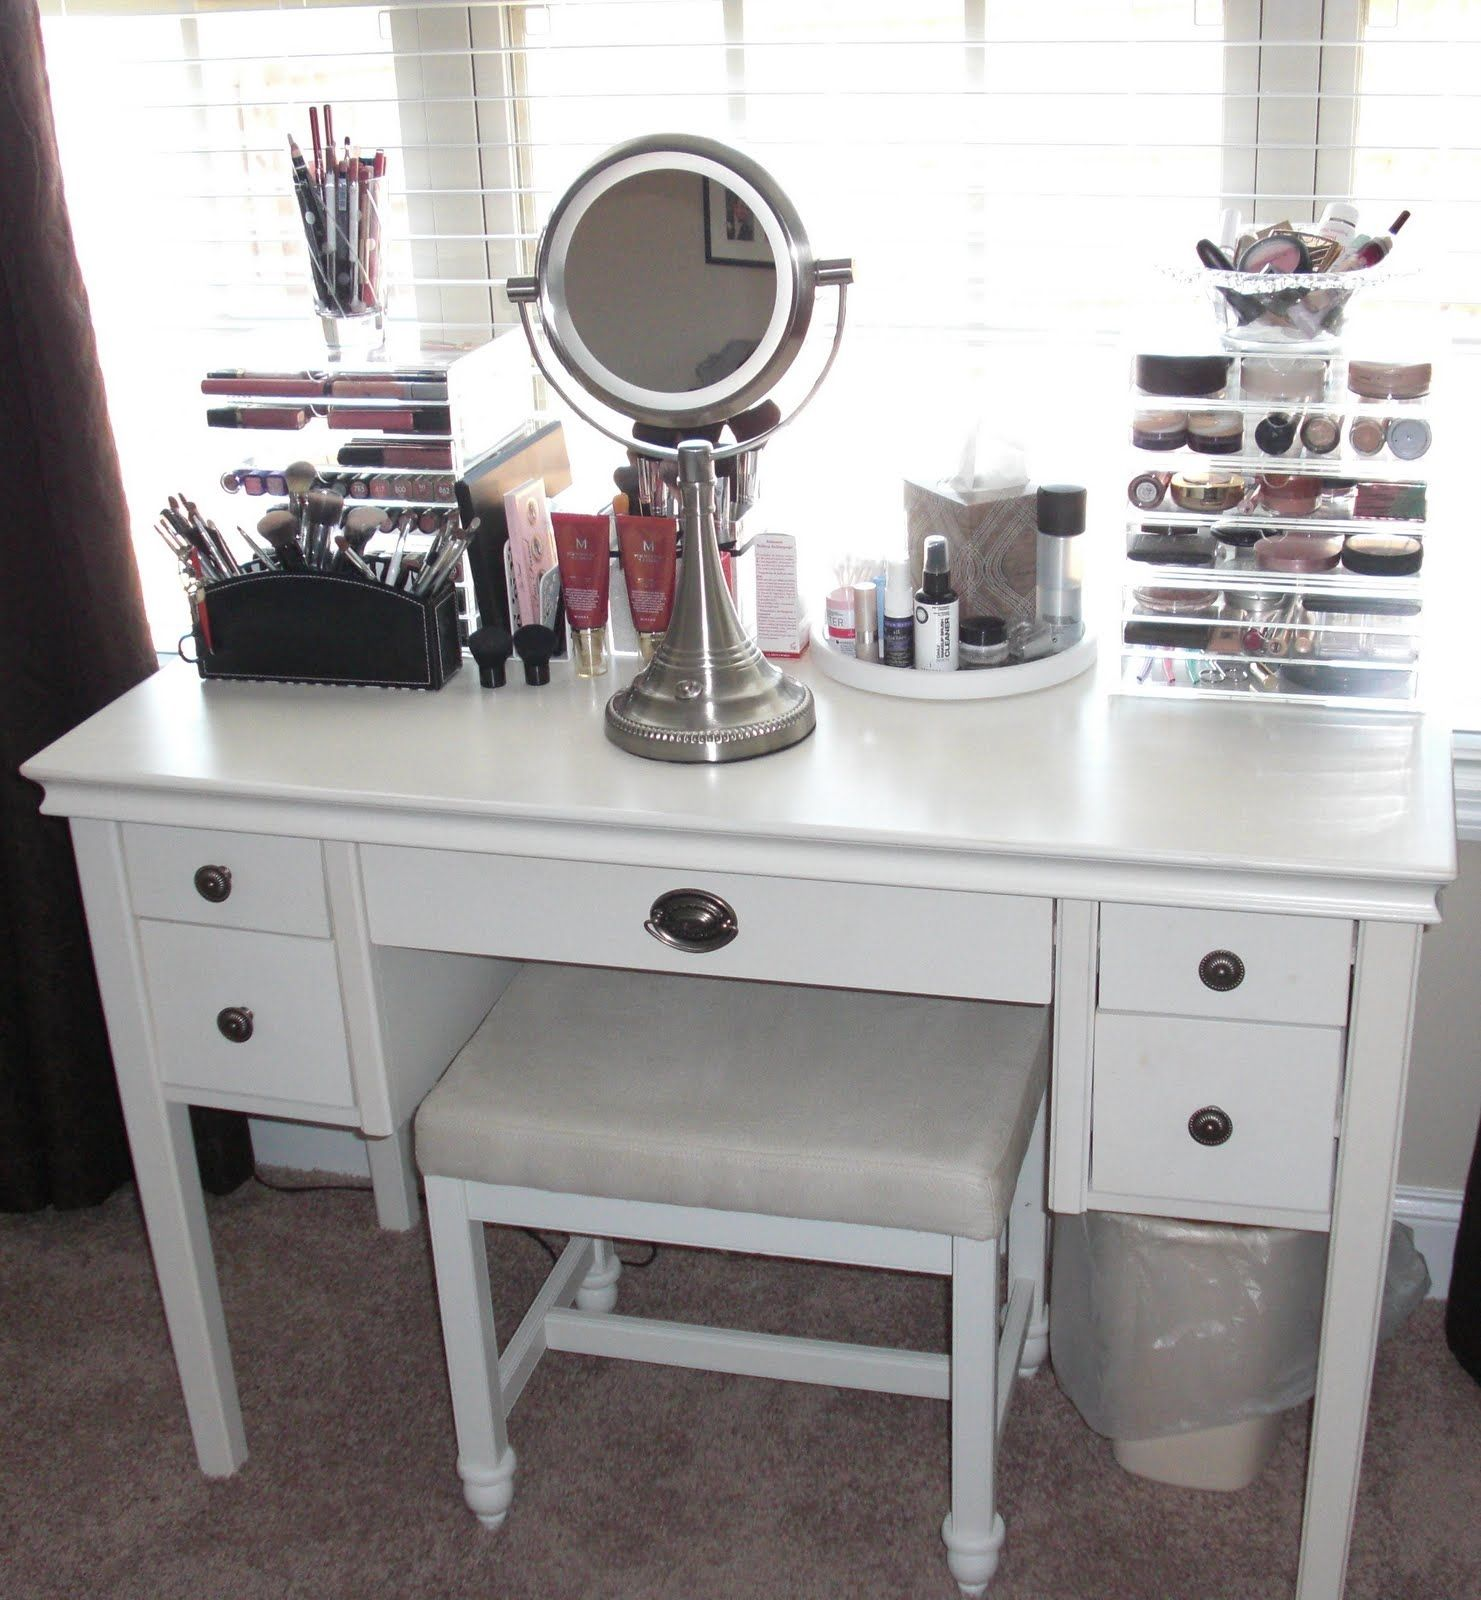 Vanity Table Set Without Mirror Vanity Set Up Makeup Vanity Storage Small Bedroom Vanity